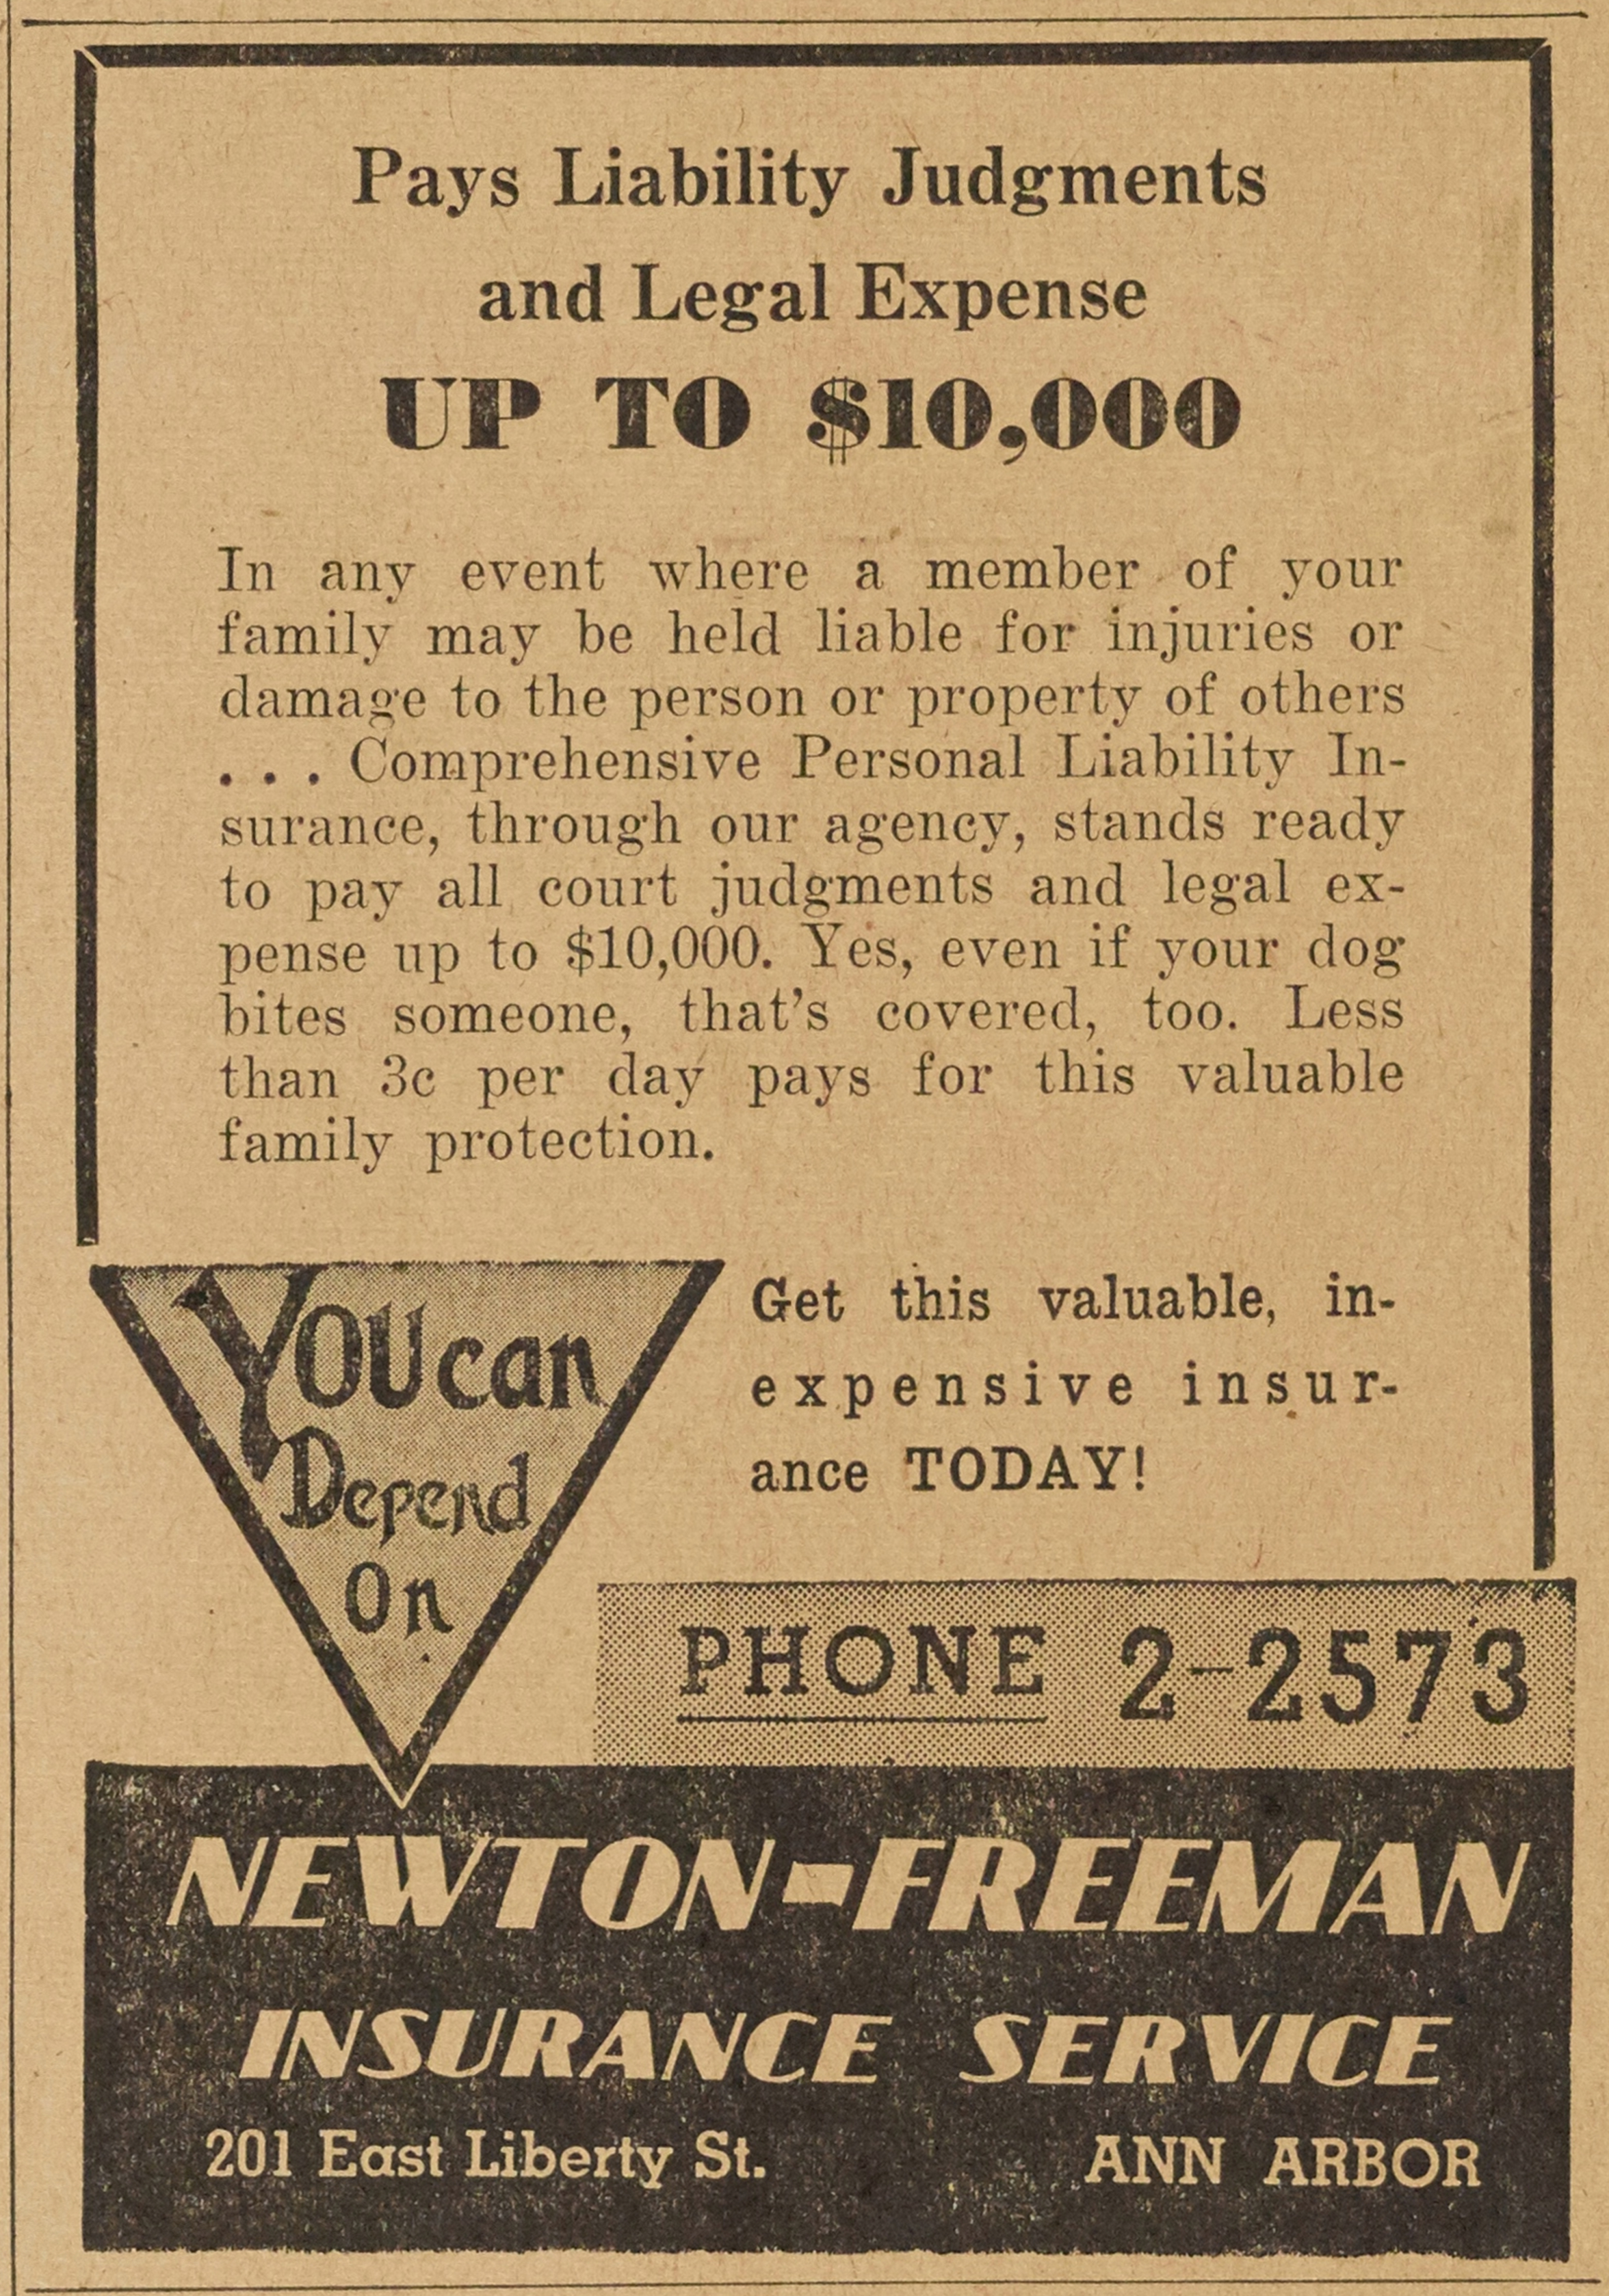 Newton-Freeman Insurance Service image